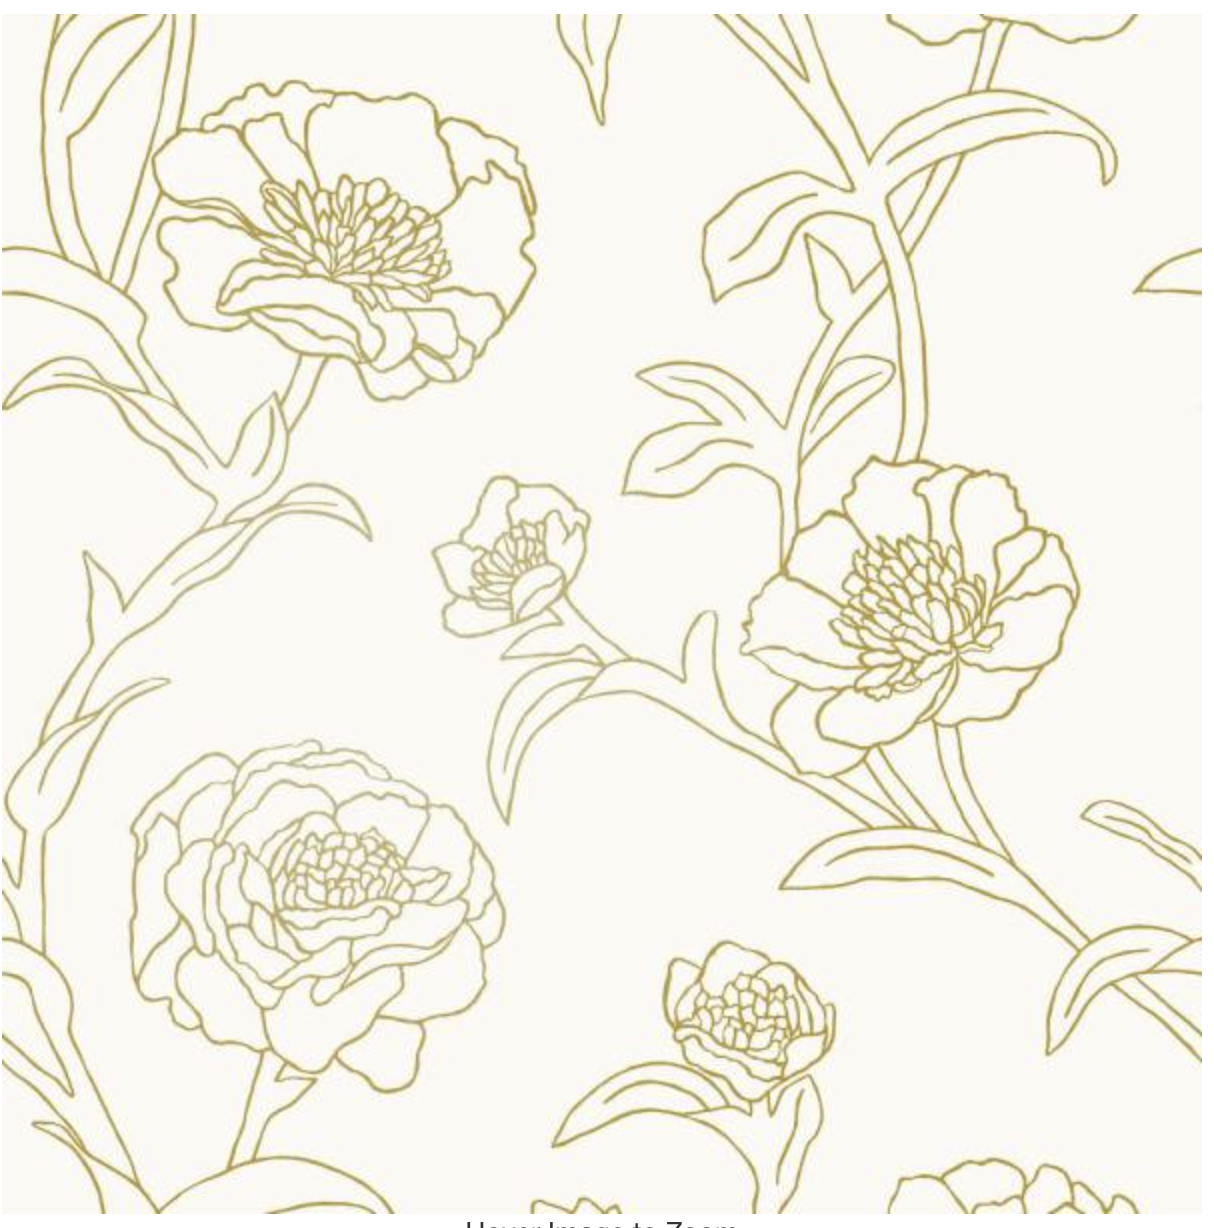 Tempaper Peonies Gold Leaf Vinyl Peelable Roll Covers 28 Sq Ft Pe10042 The Home Depot Peony Wallpaper Peelable Wallpaper Removable Wallpaper